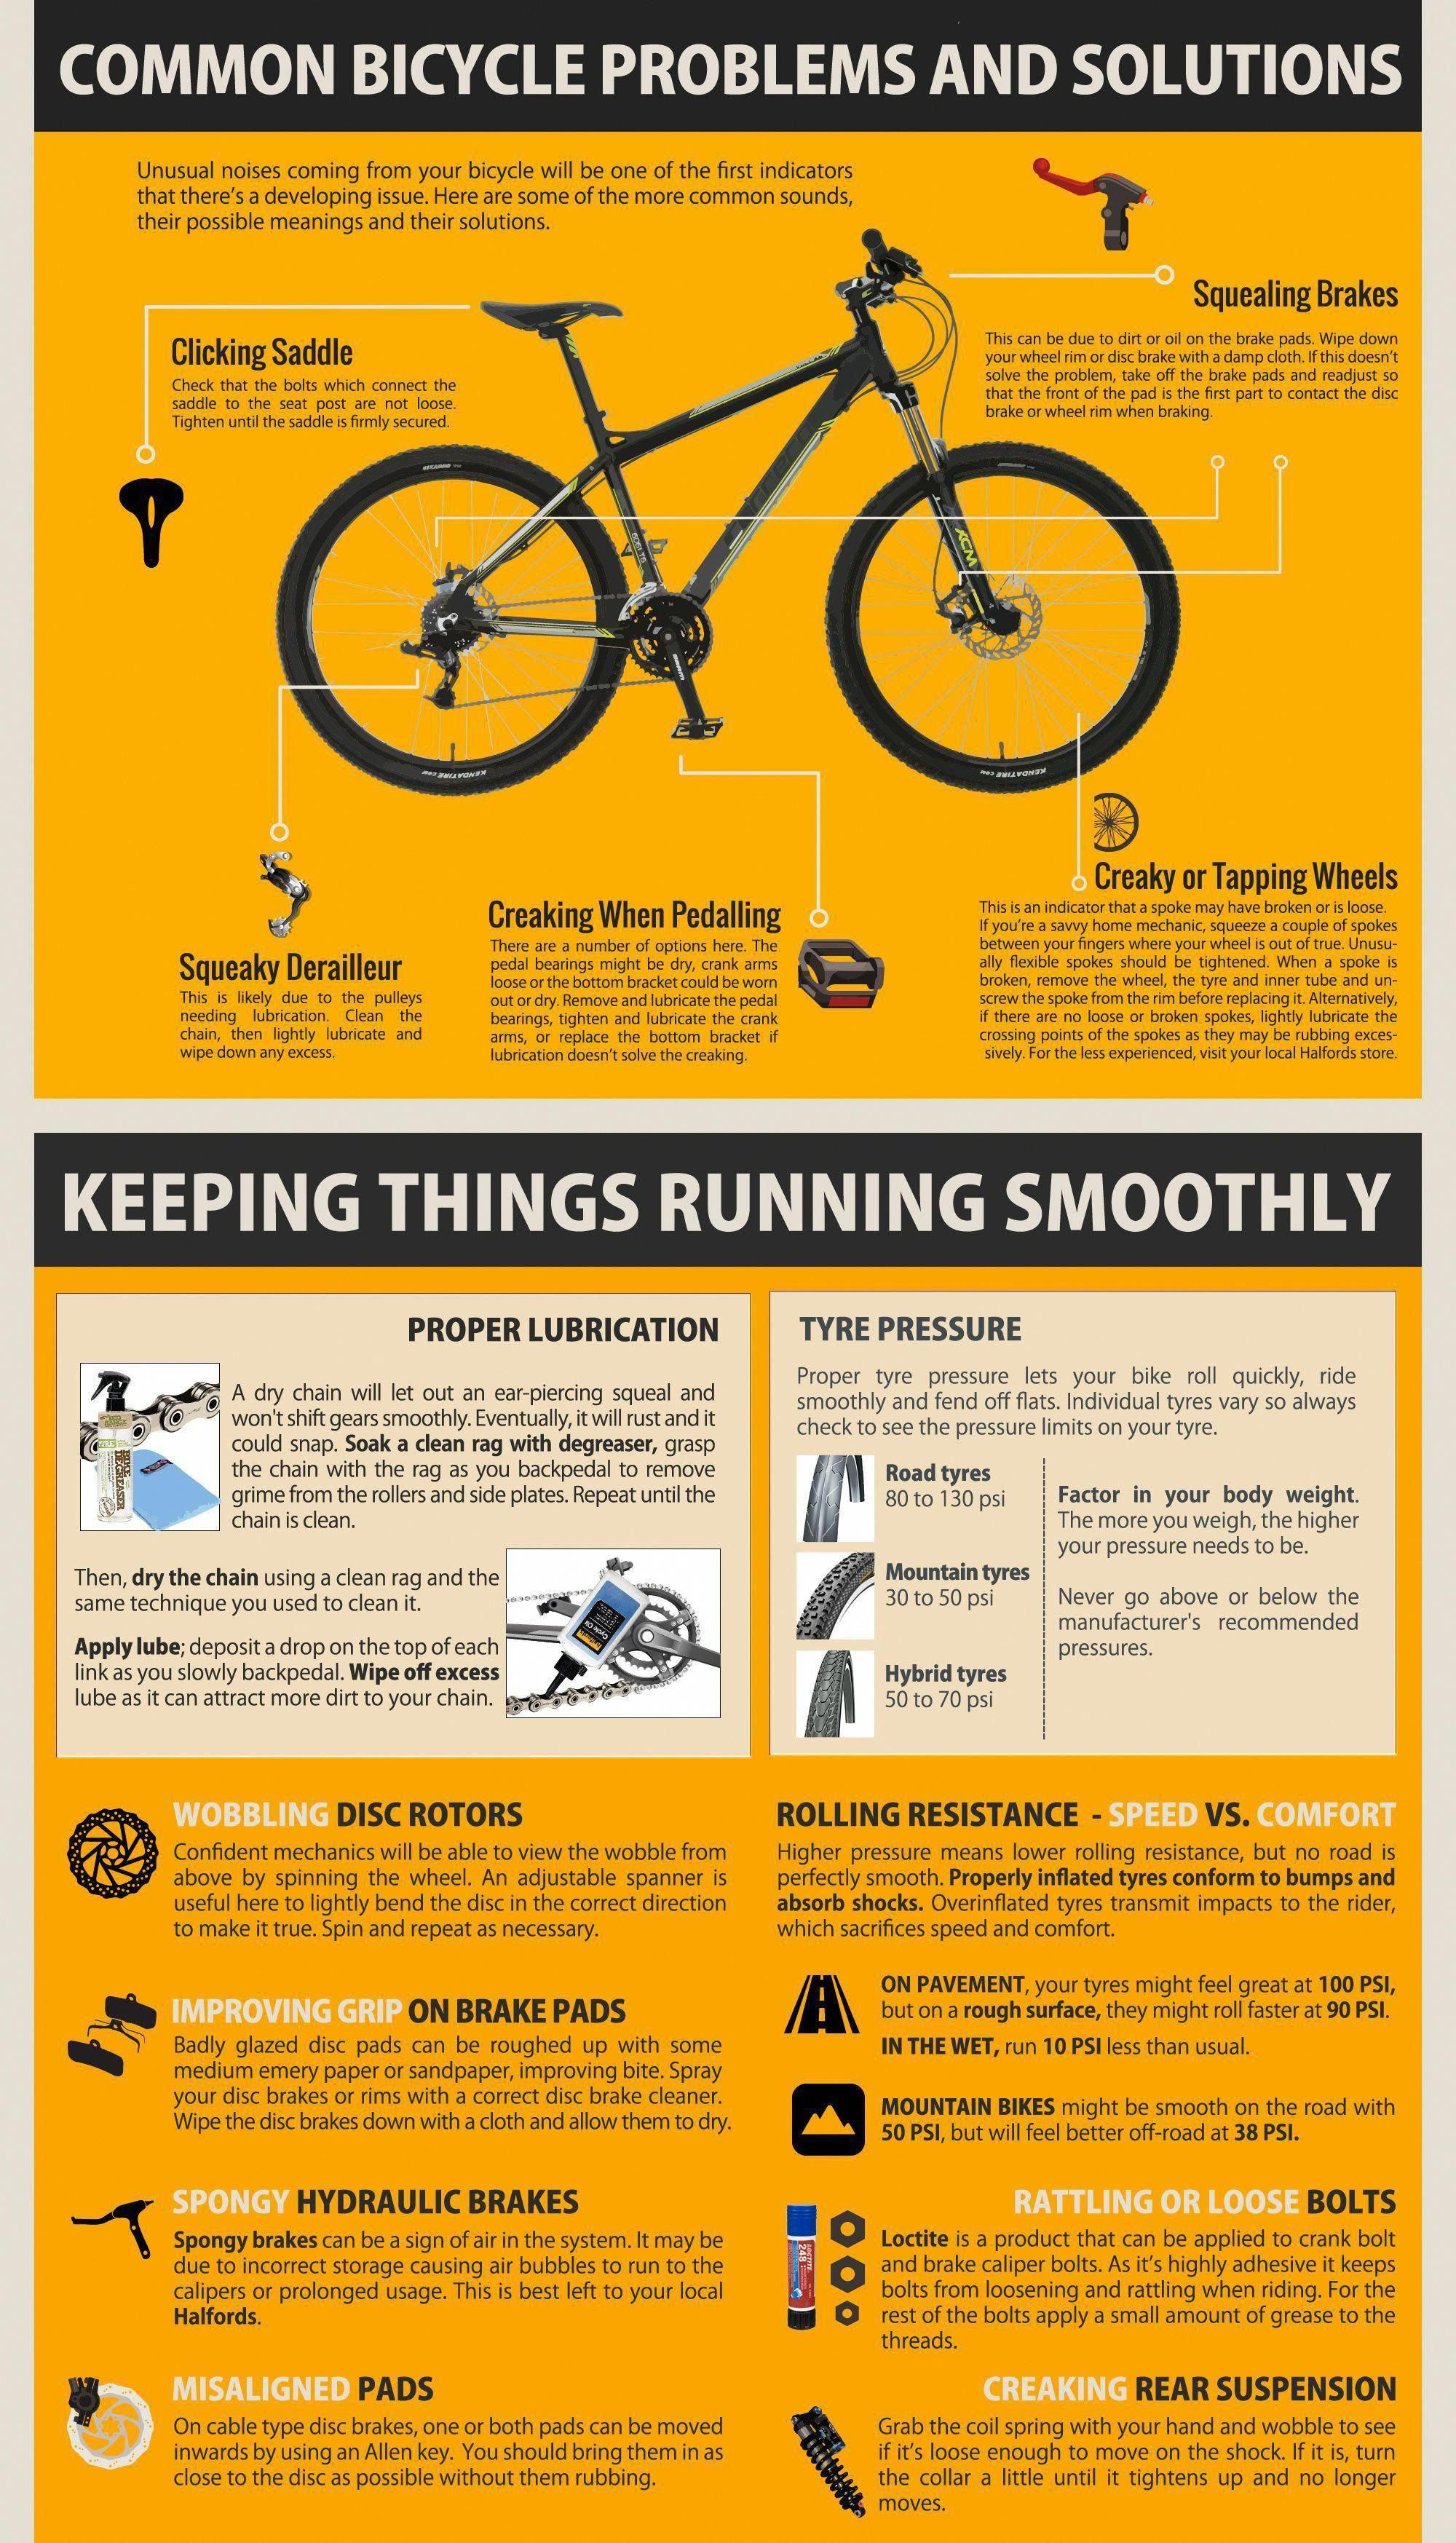 Best Accessories For Mountain Bike With Images Bicycle Maintenance Bike Repair Mountain Biking